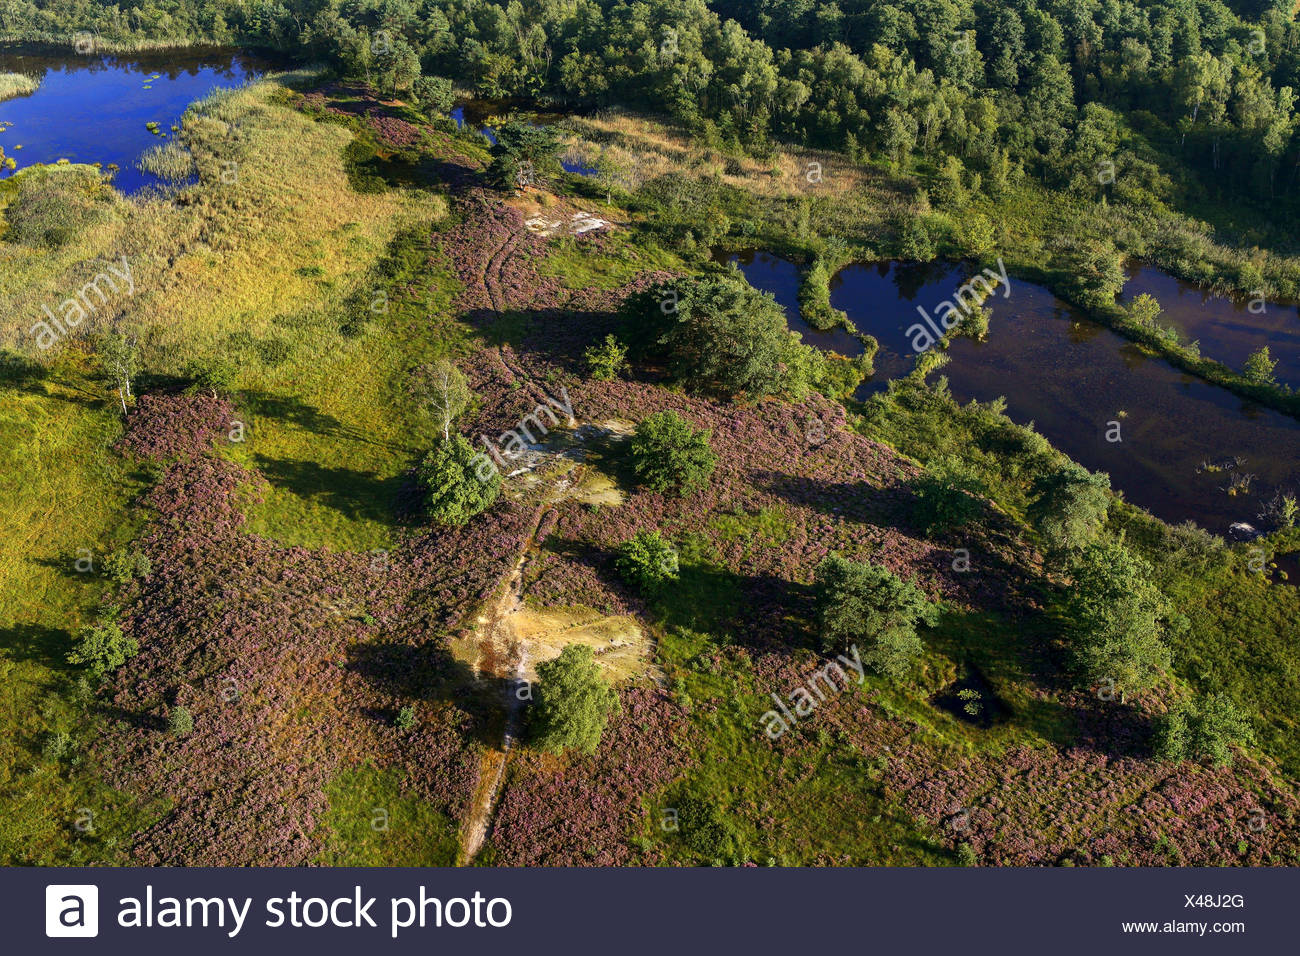 aerial view to heath, Belgium, Limburg, Hoge Kempen National Park - Stock Image